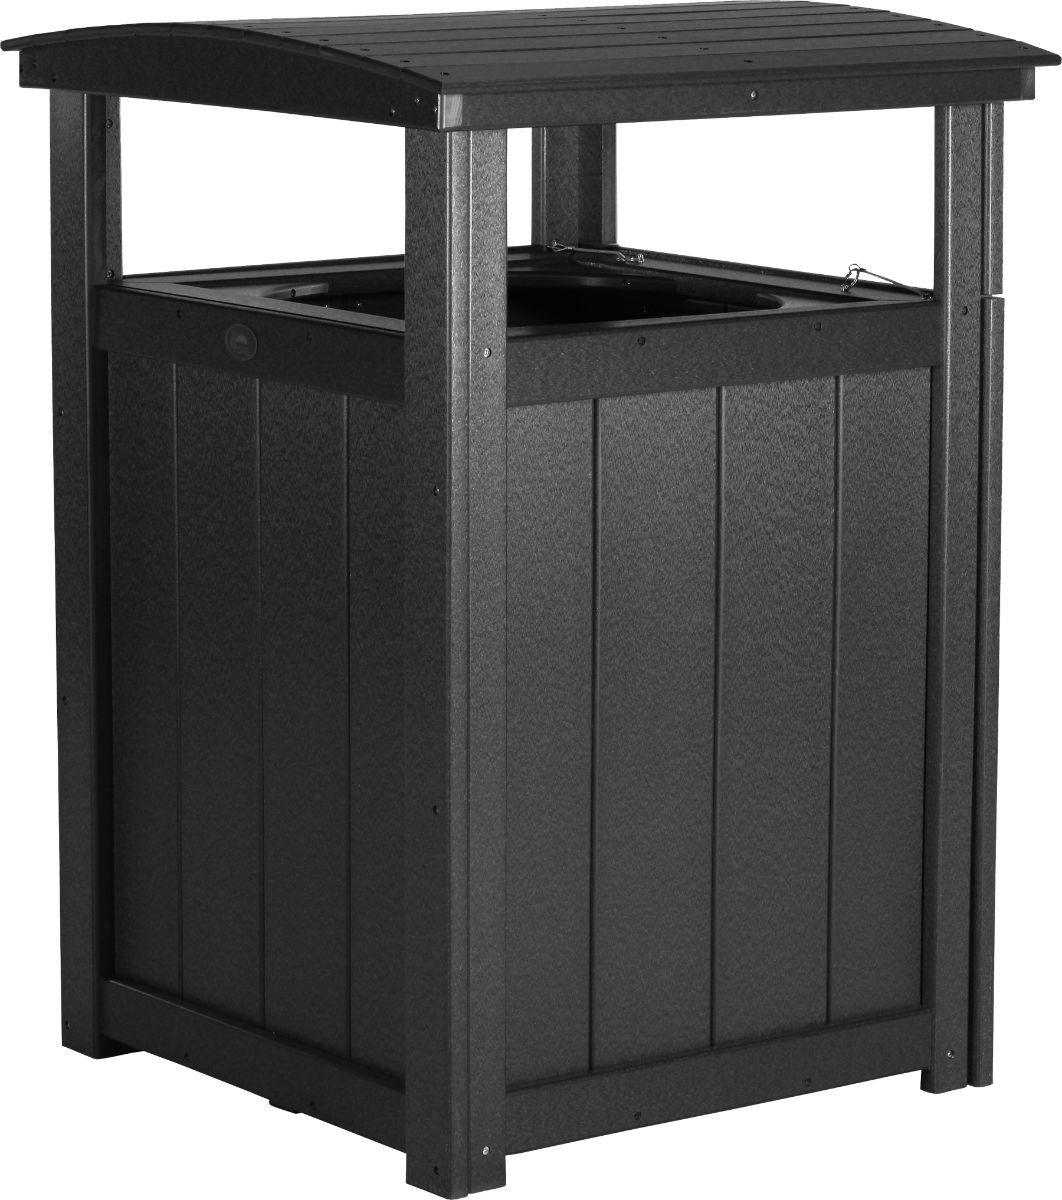 Black Pigeon Point Commercial Outdoor Trashcan